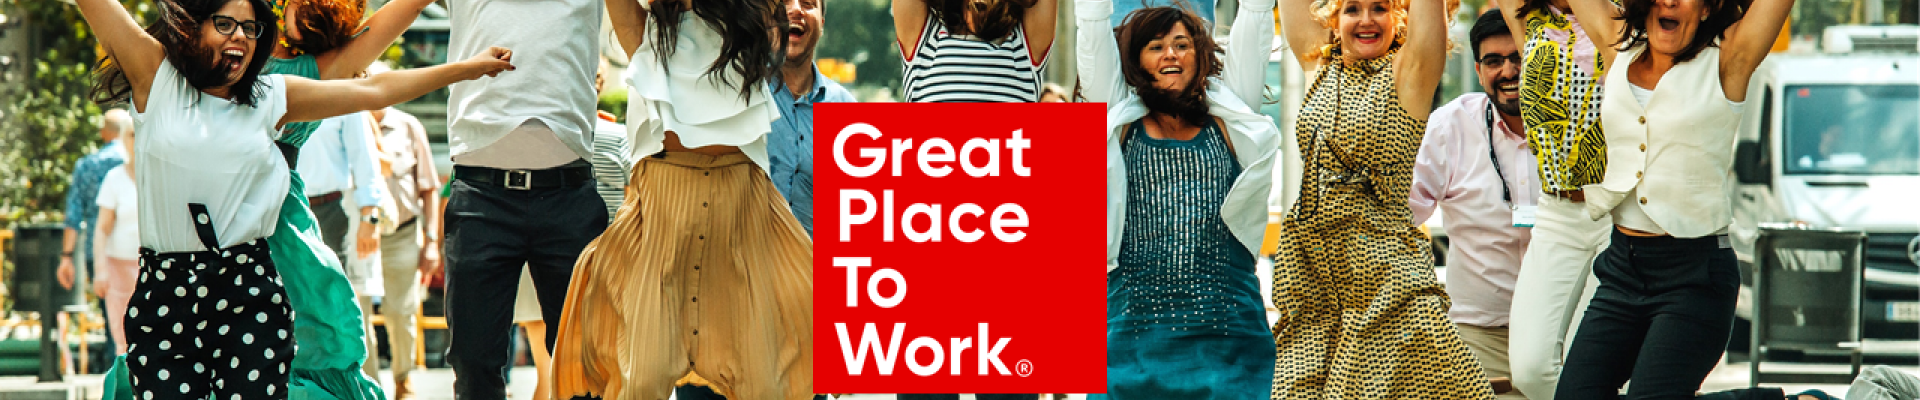 Great Place to Work GPTW